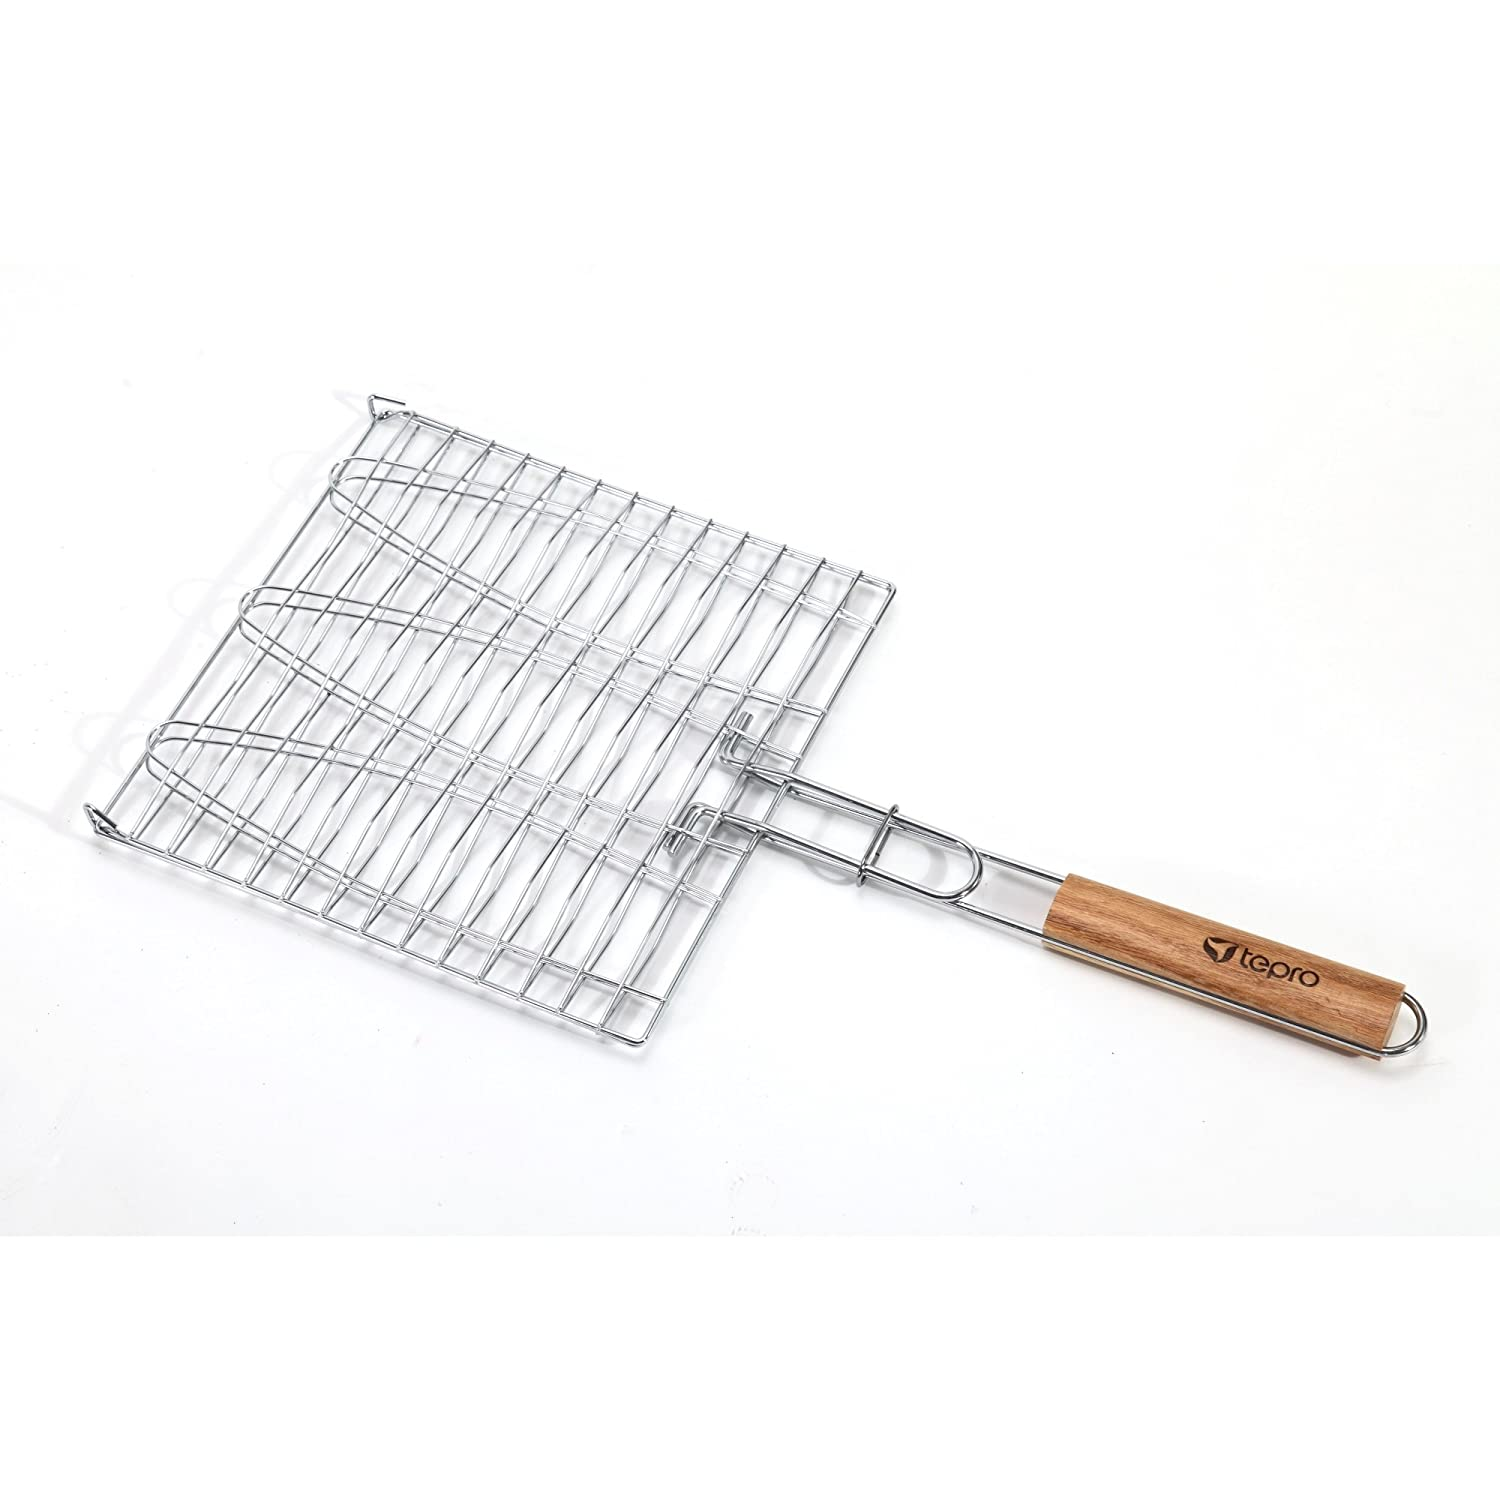 BBQ Grill Basket Turner for 3 Fish with Wooden Handle tepro 8525